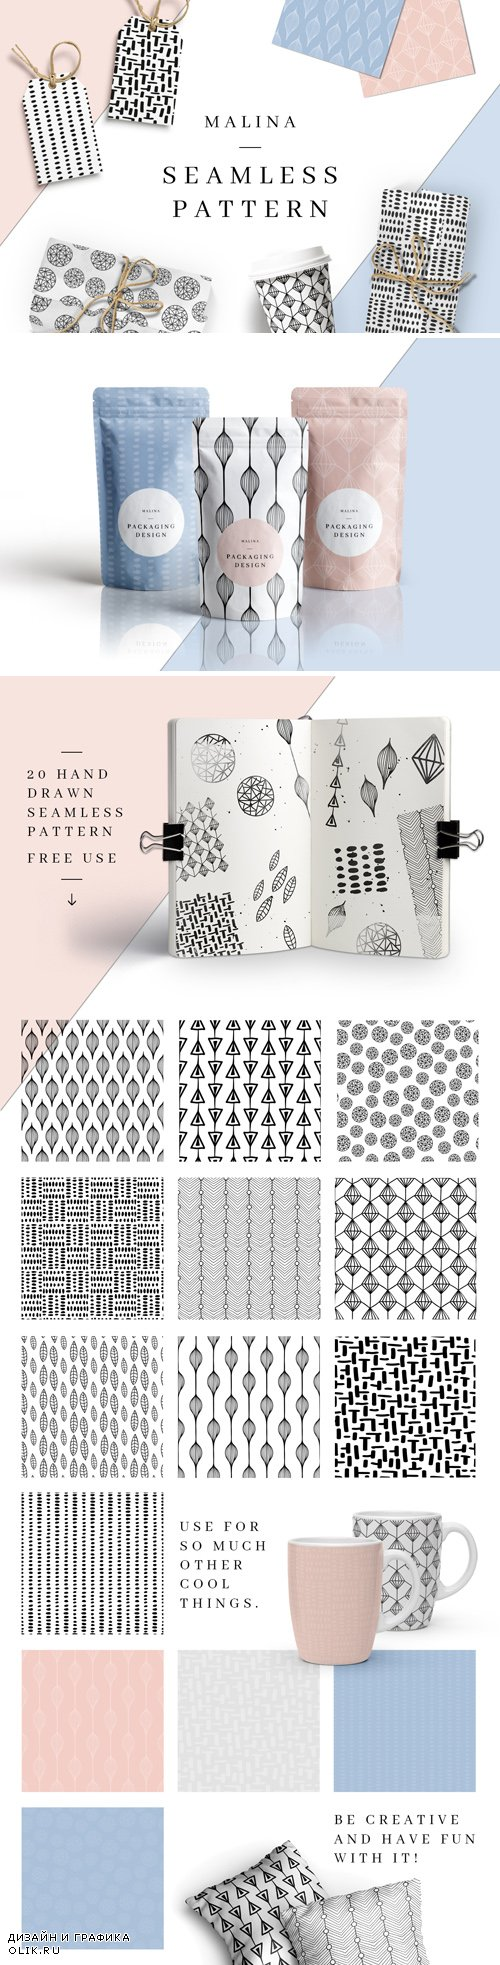 20 Handdrawn Seamless Patterns